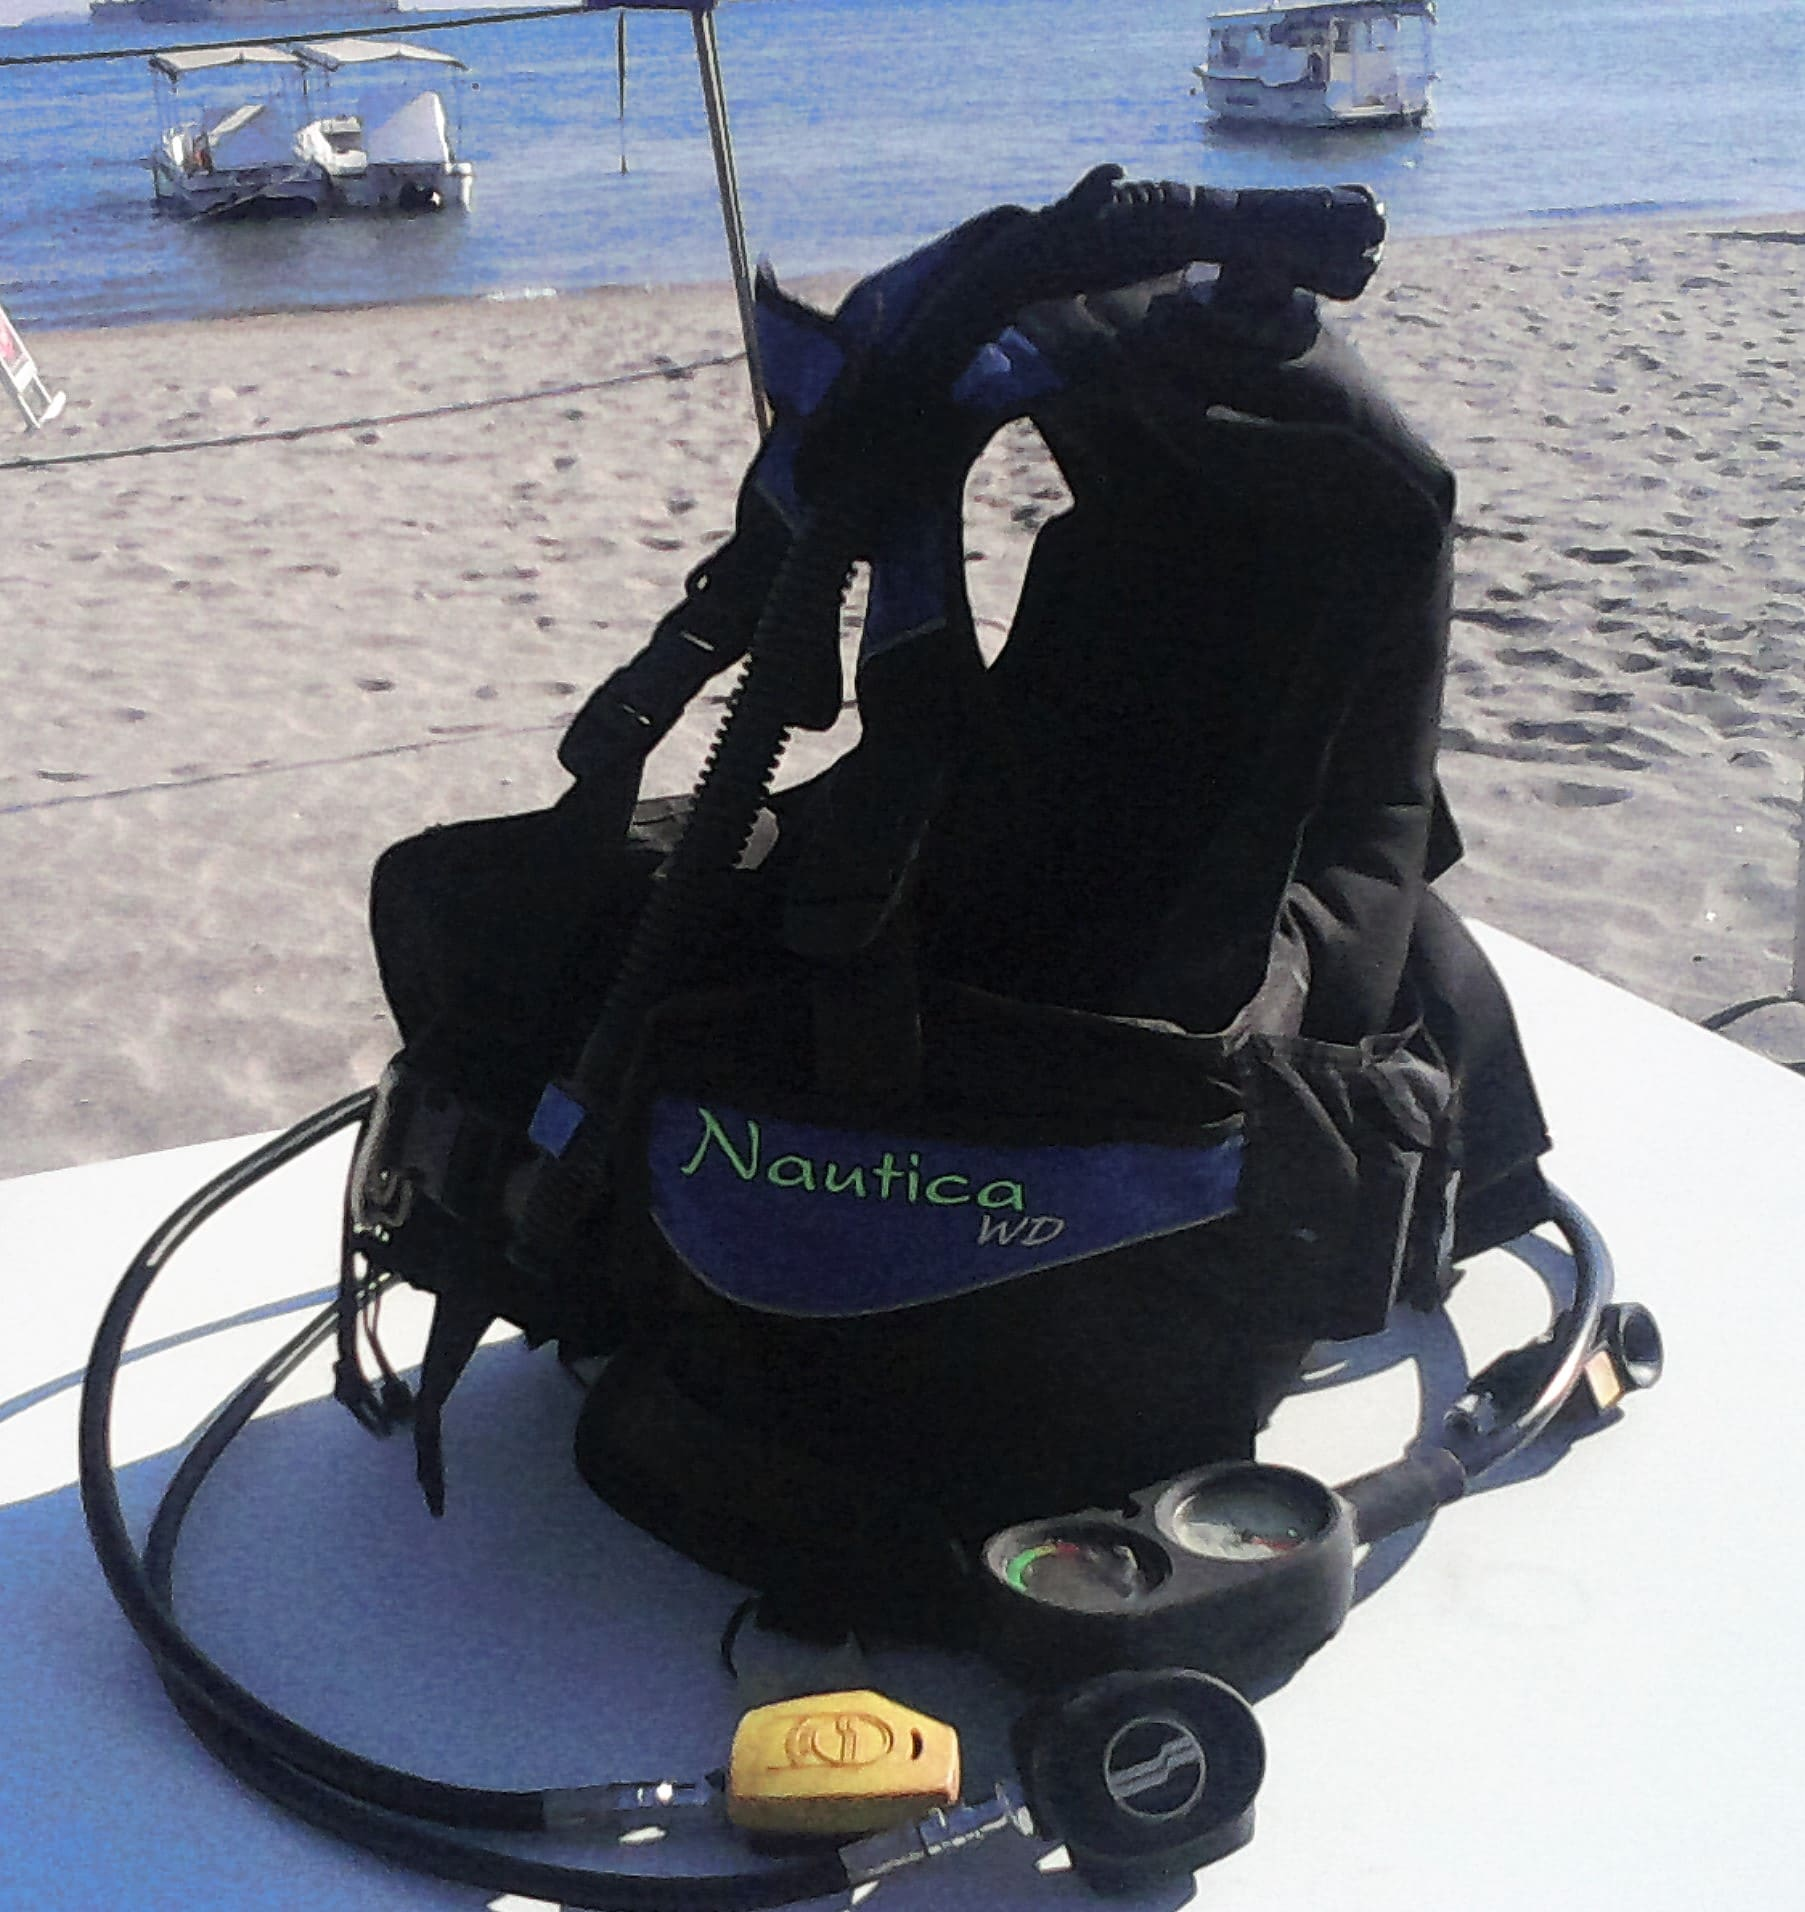 An original item of my scuba kit, this BCD is about 18 years old and has 500 dives.